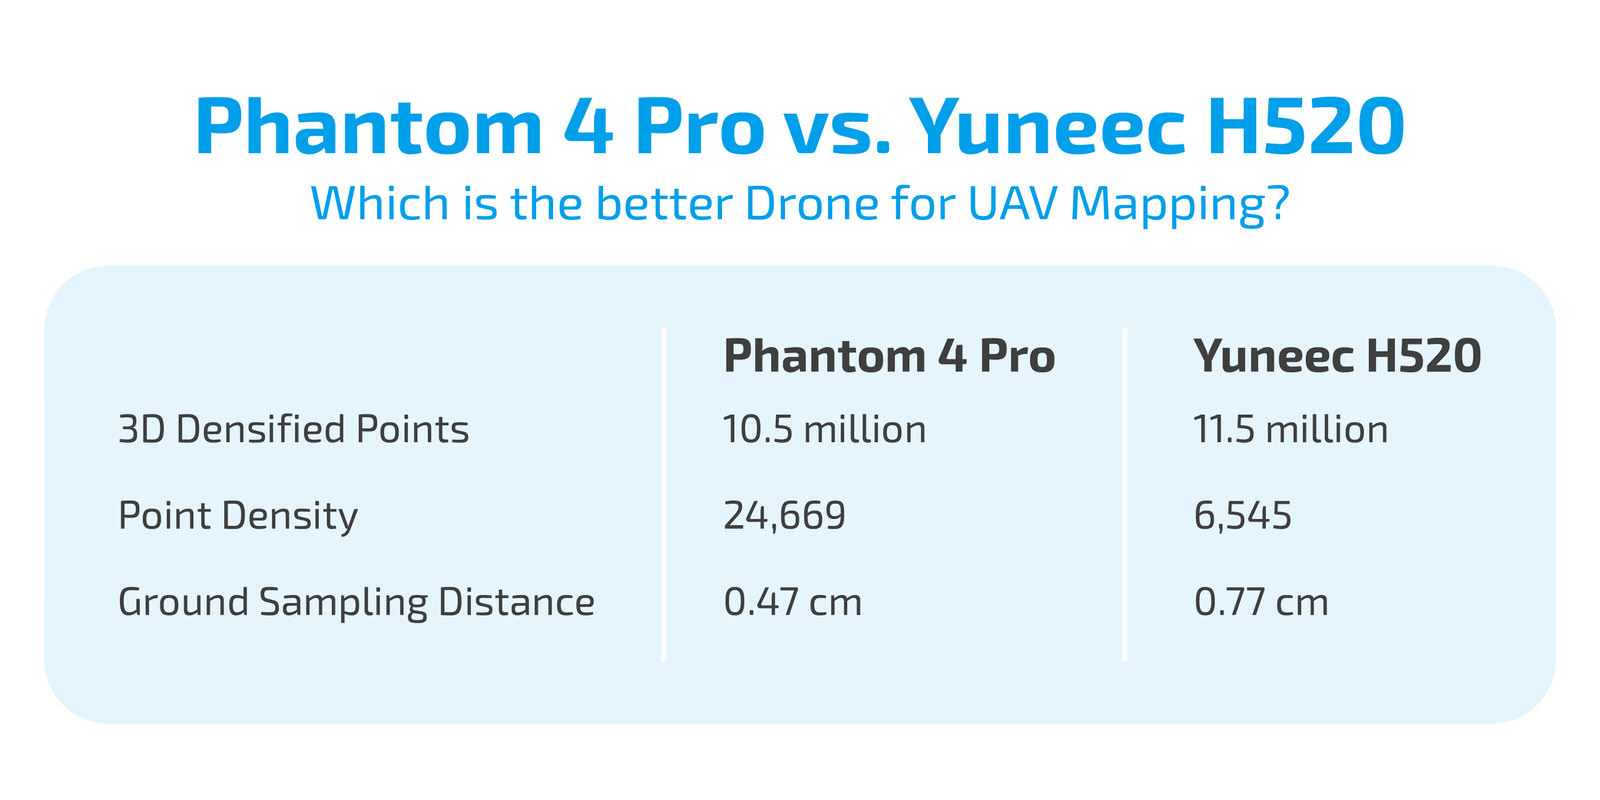 DJI Phantom 4 Pro vs. Yuneec H520 - Which Is the Better Drone for UAV Mapping?